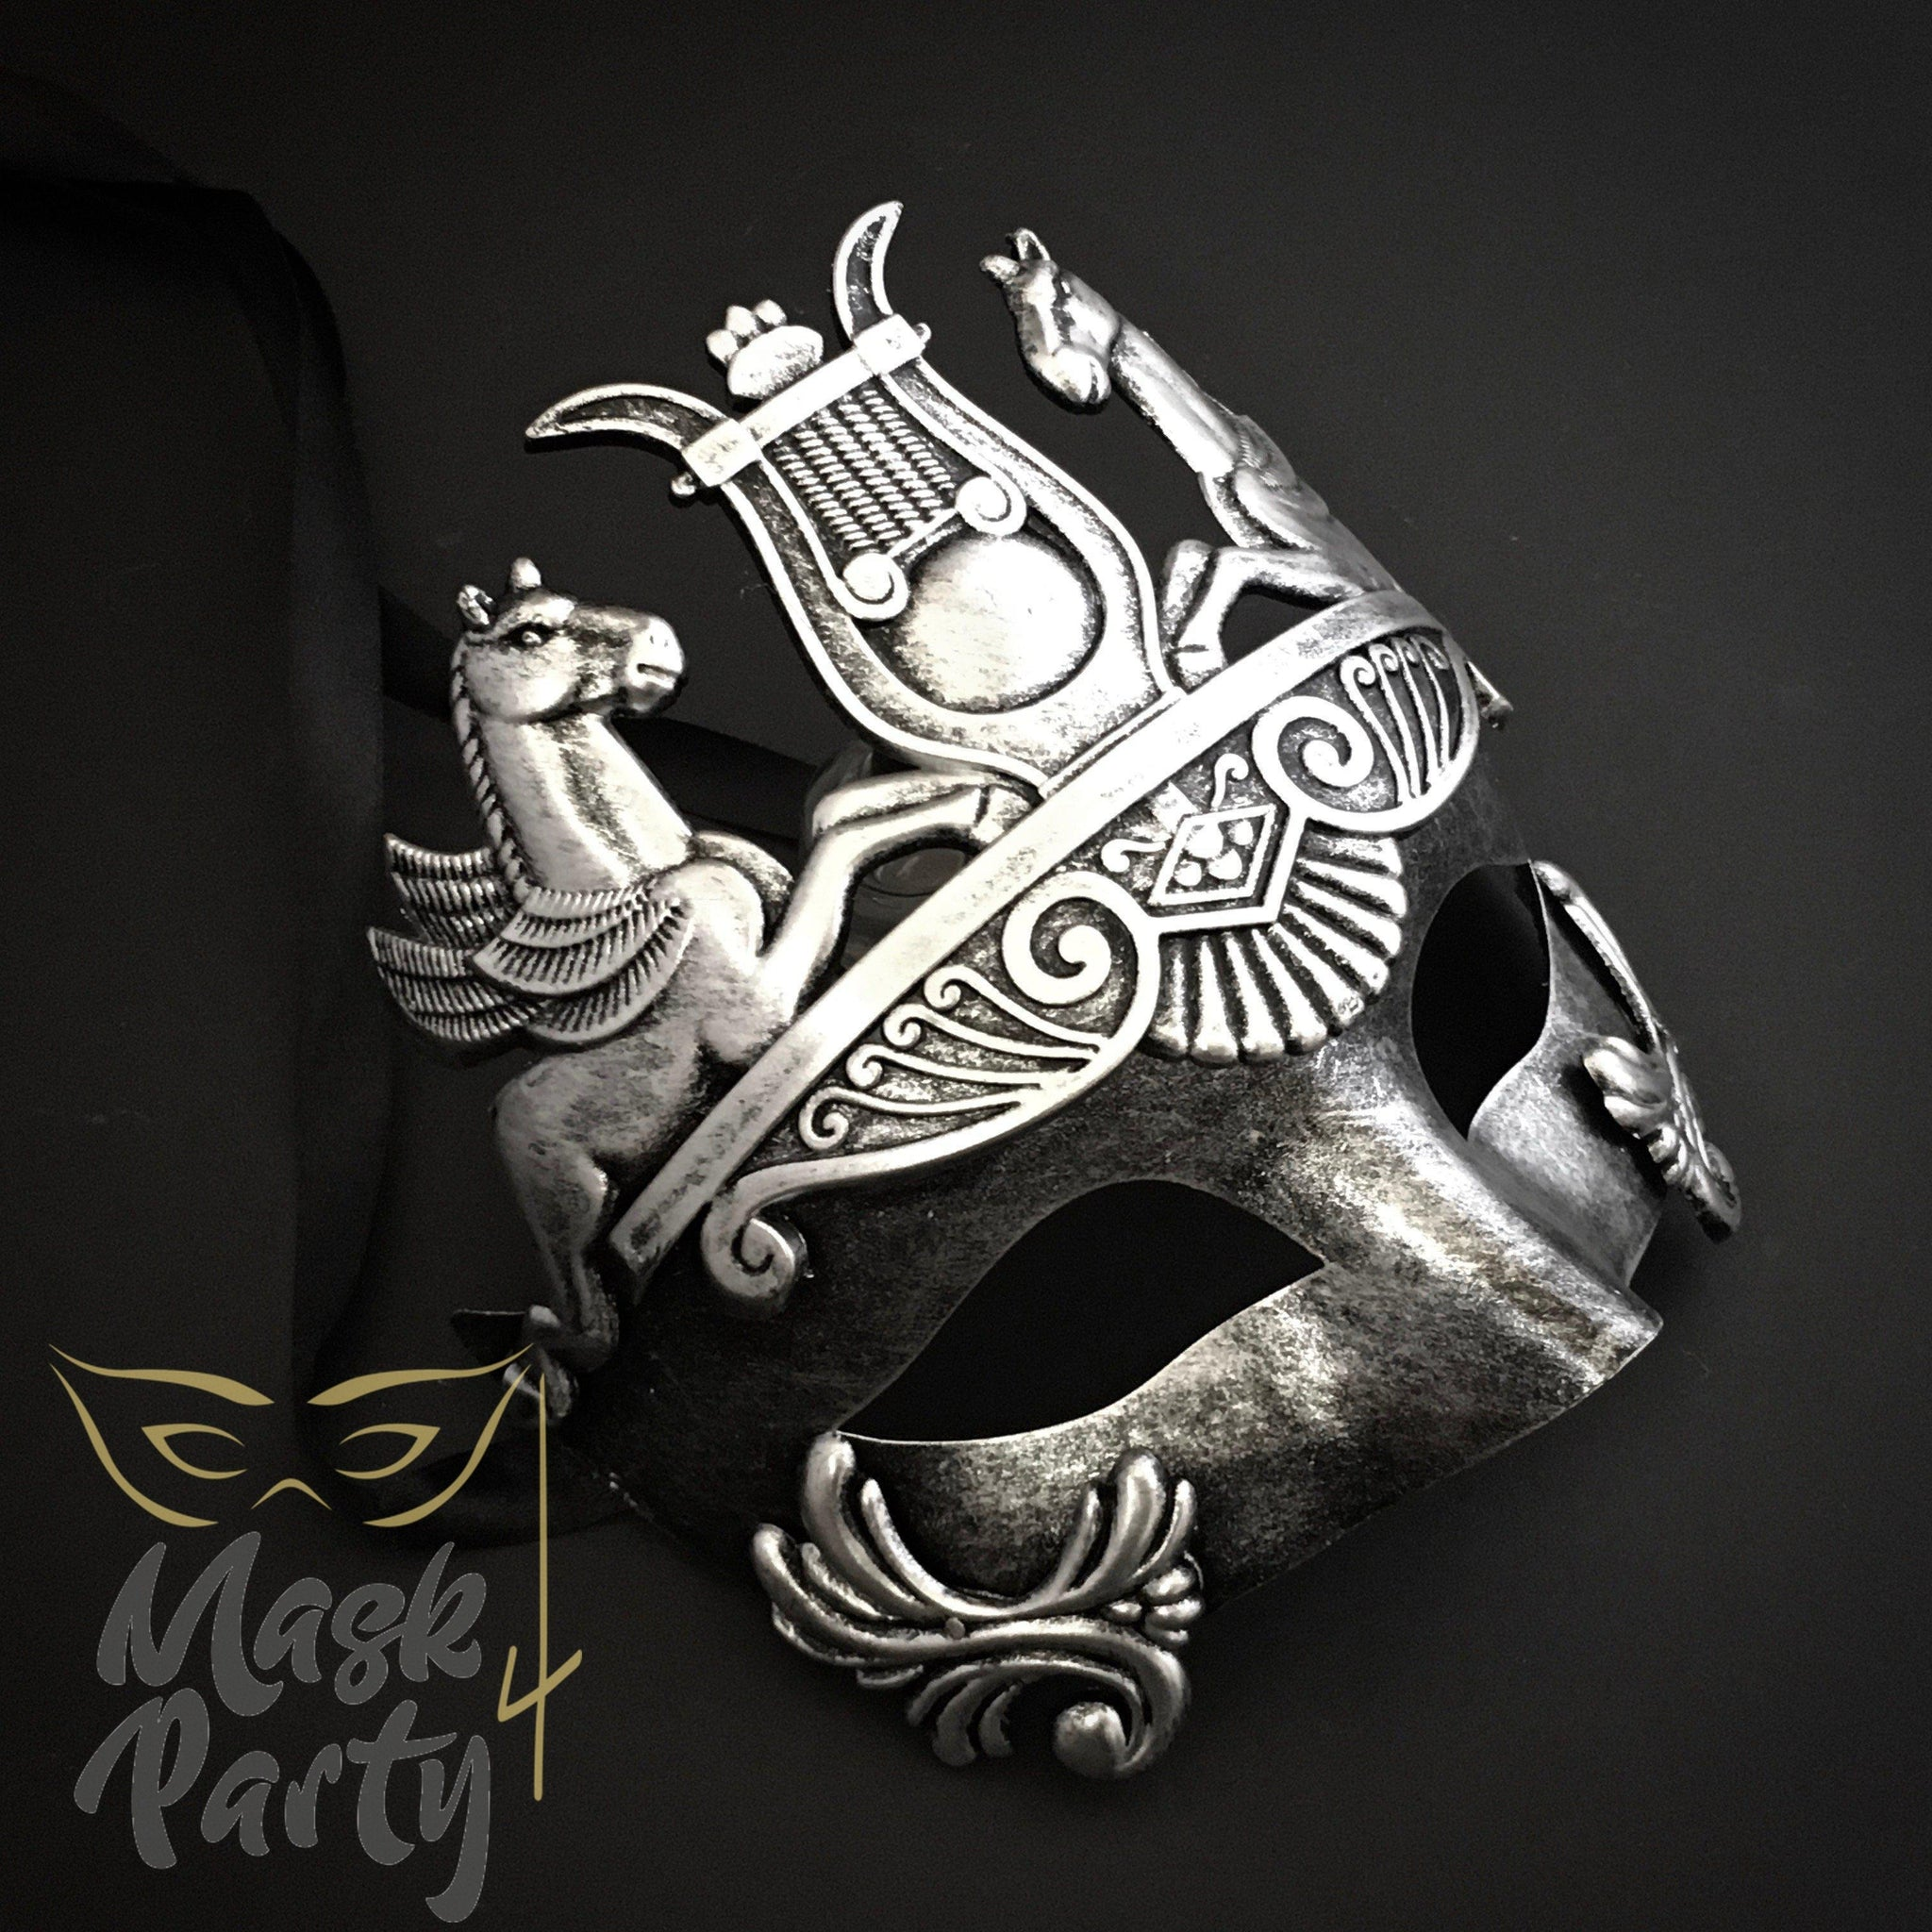 Masquerade Mask - Venetian Greek Mask - Black/Silver - Mask4Party